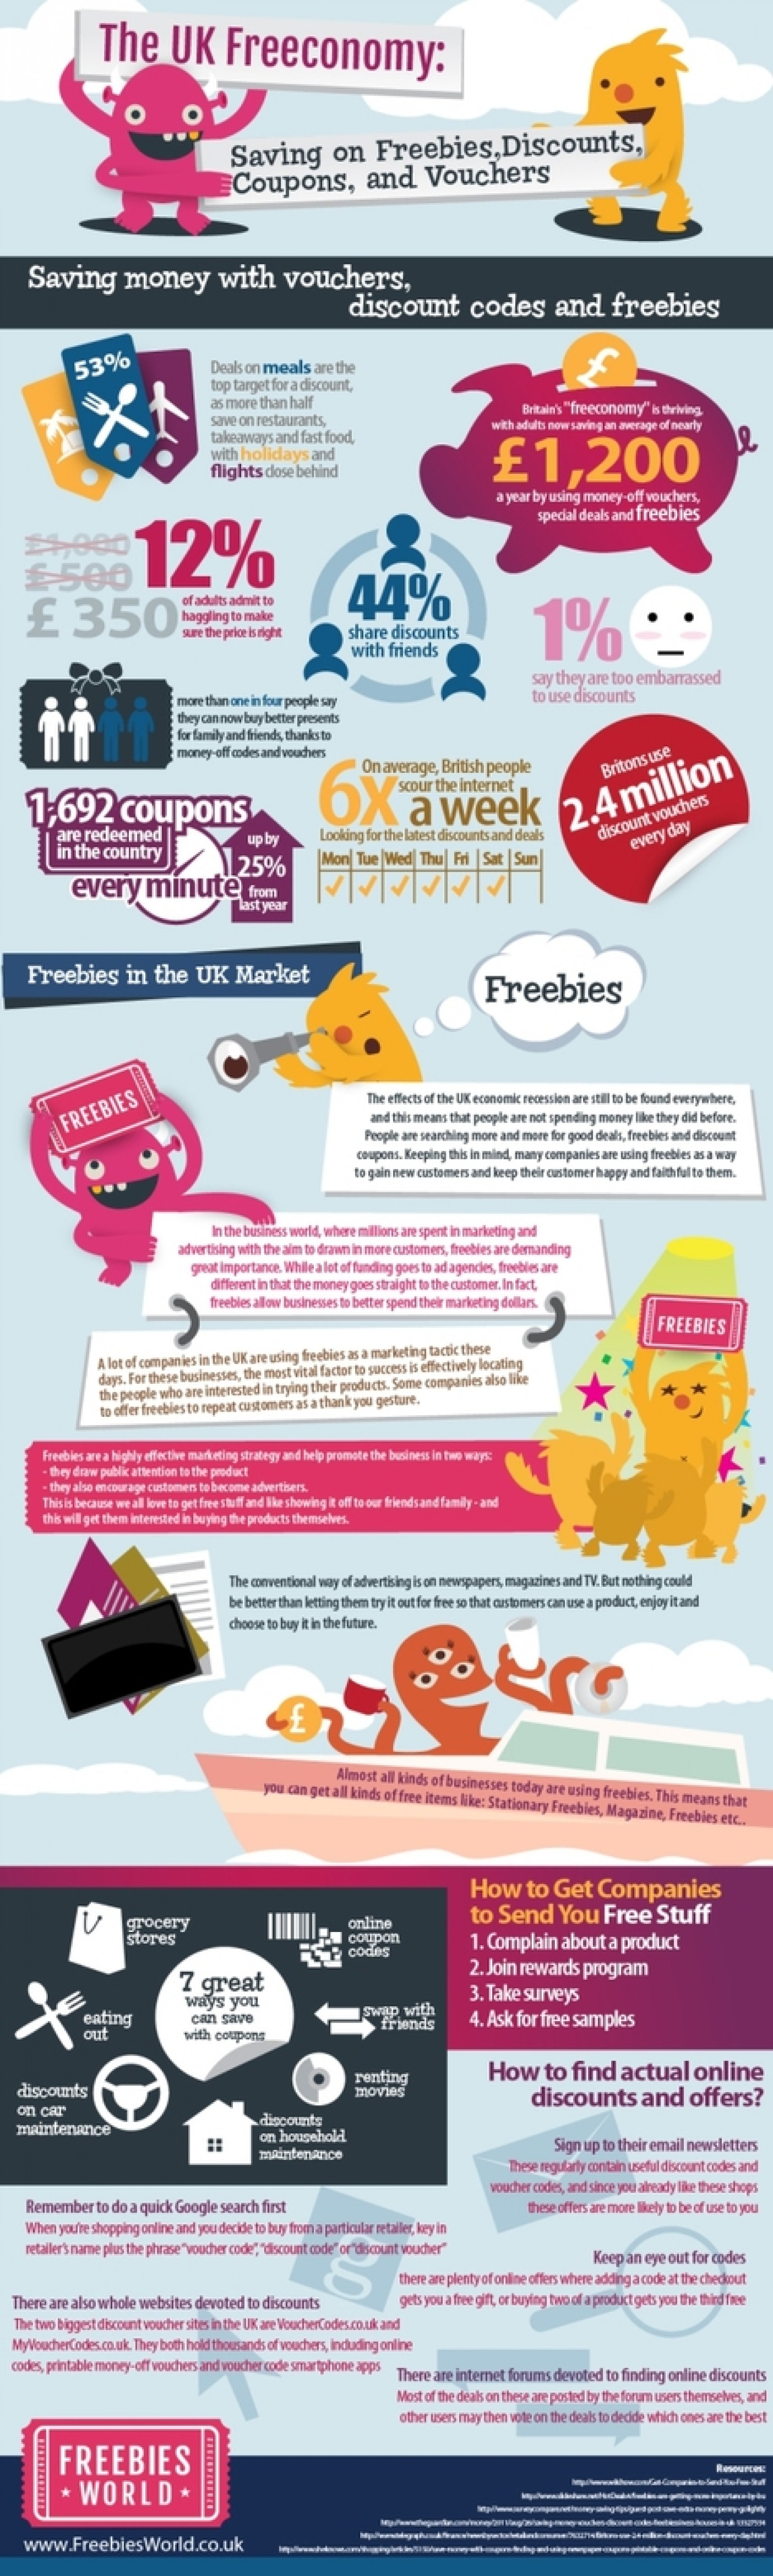 The UK Freeconomy Infographic